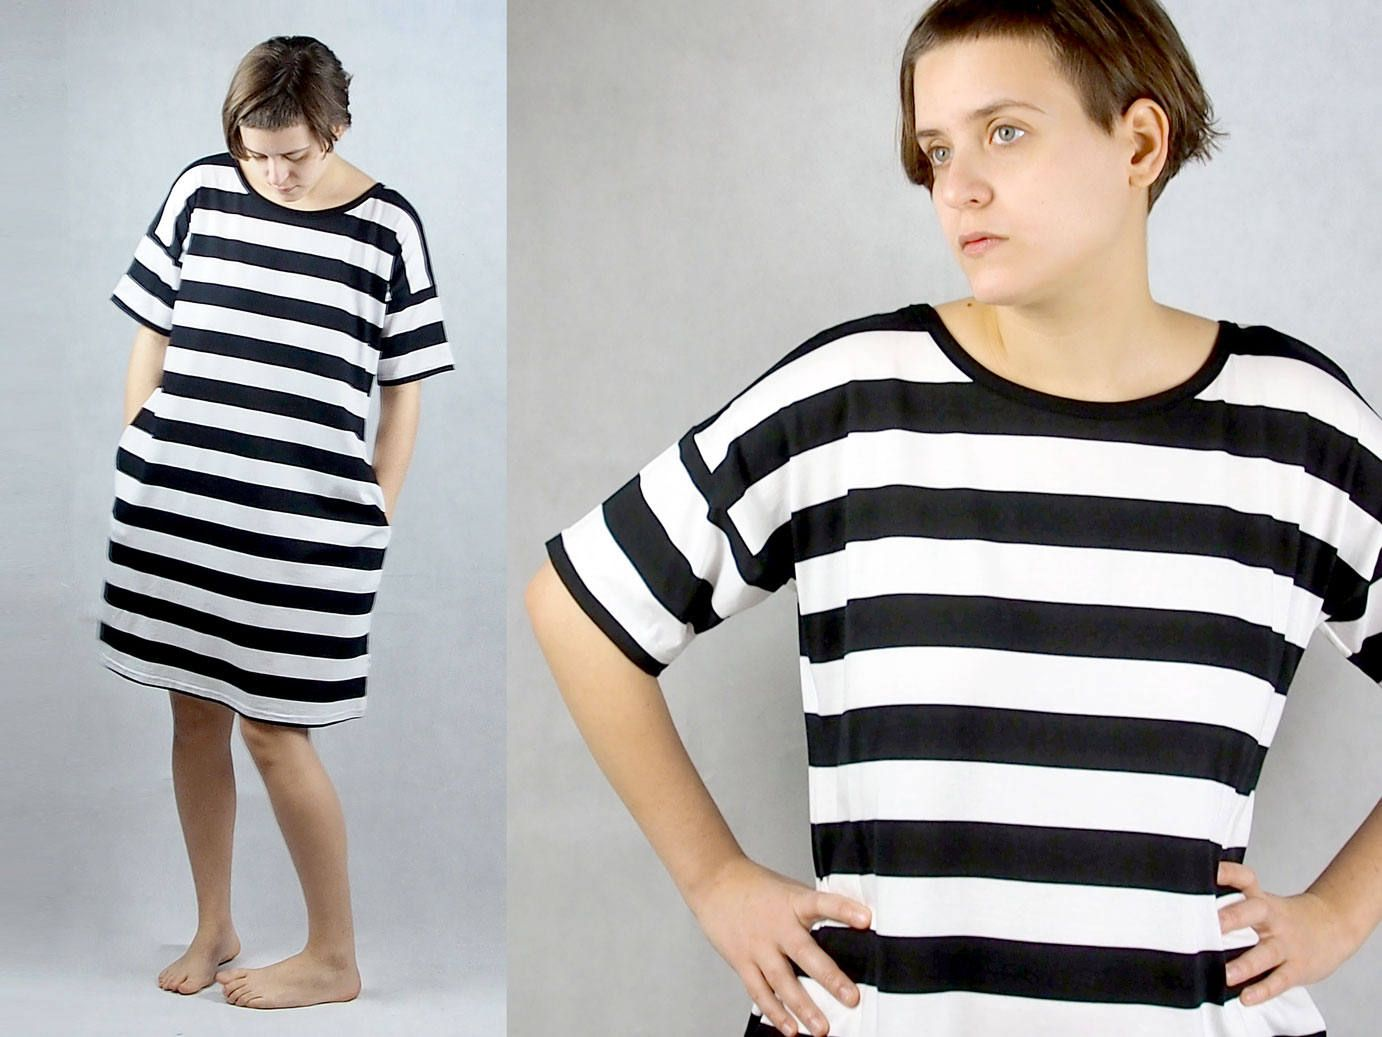 Tricot dress with pockets and stripes black and white women s clothing t shirt dress cotton by themotekshop on etsy